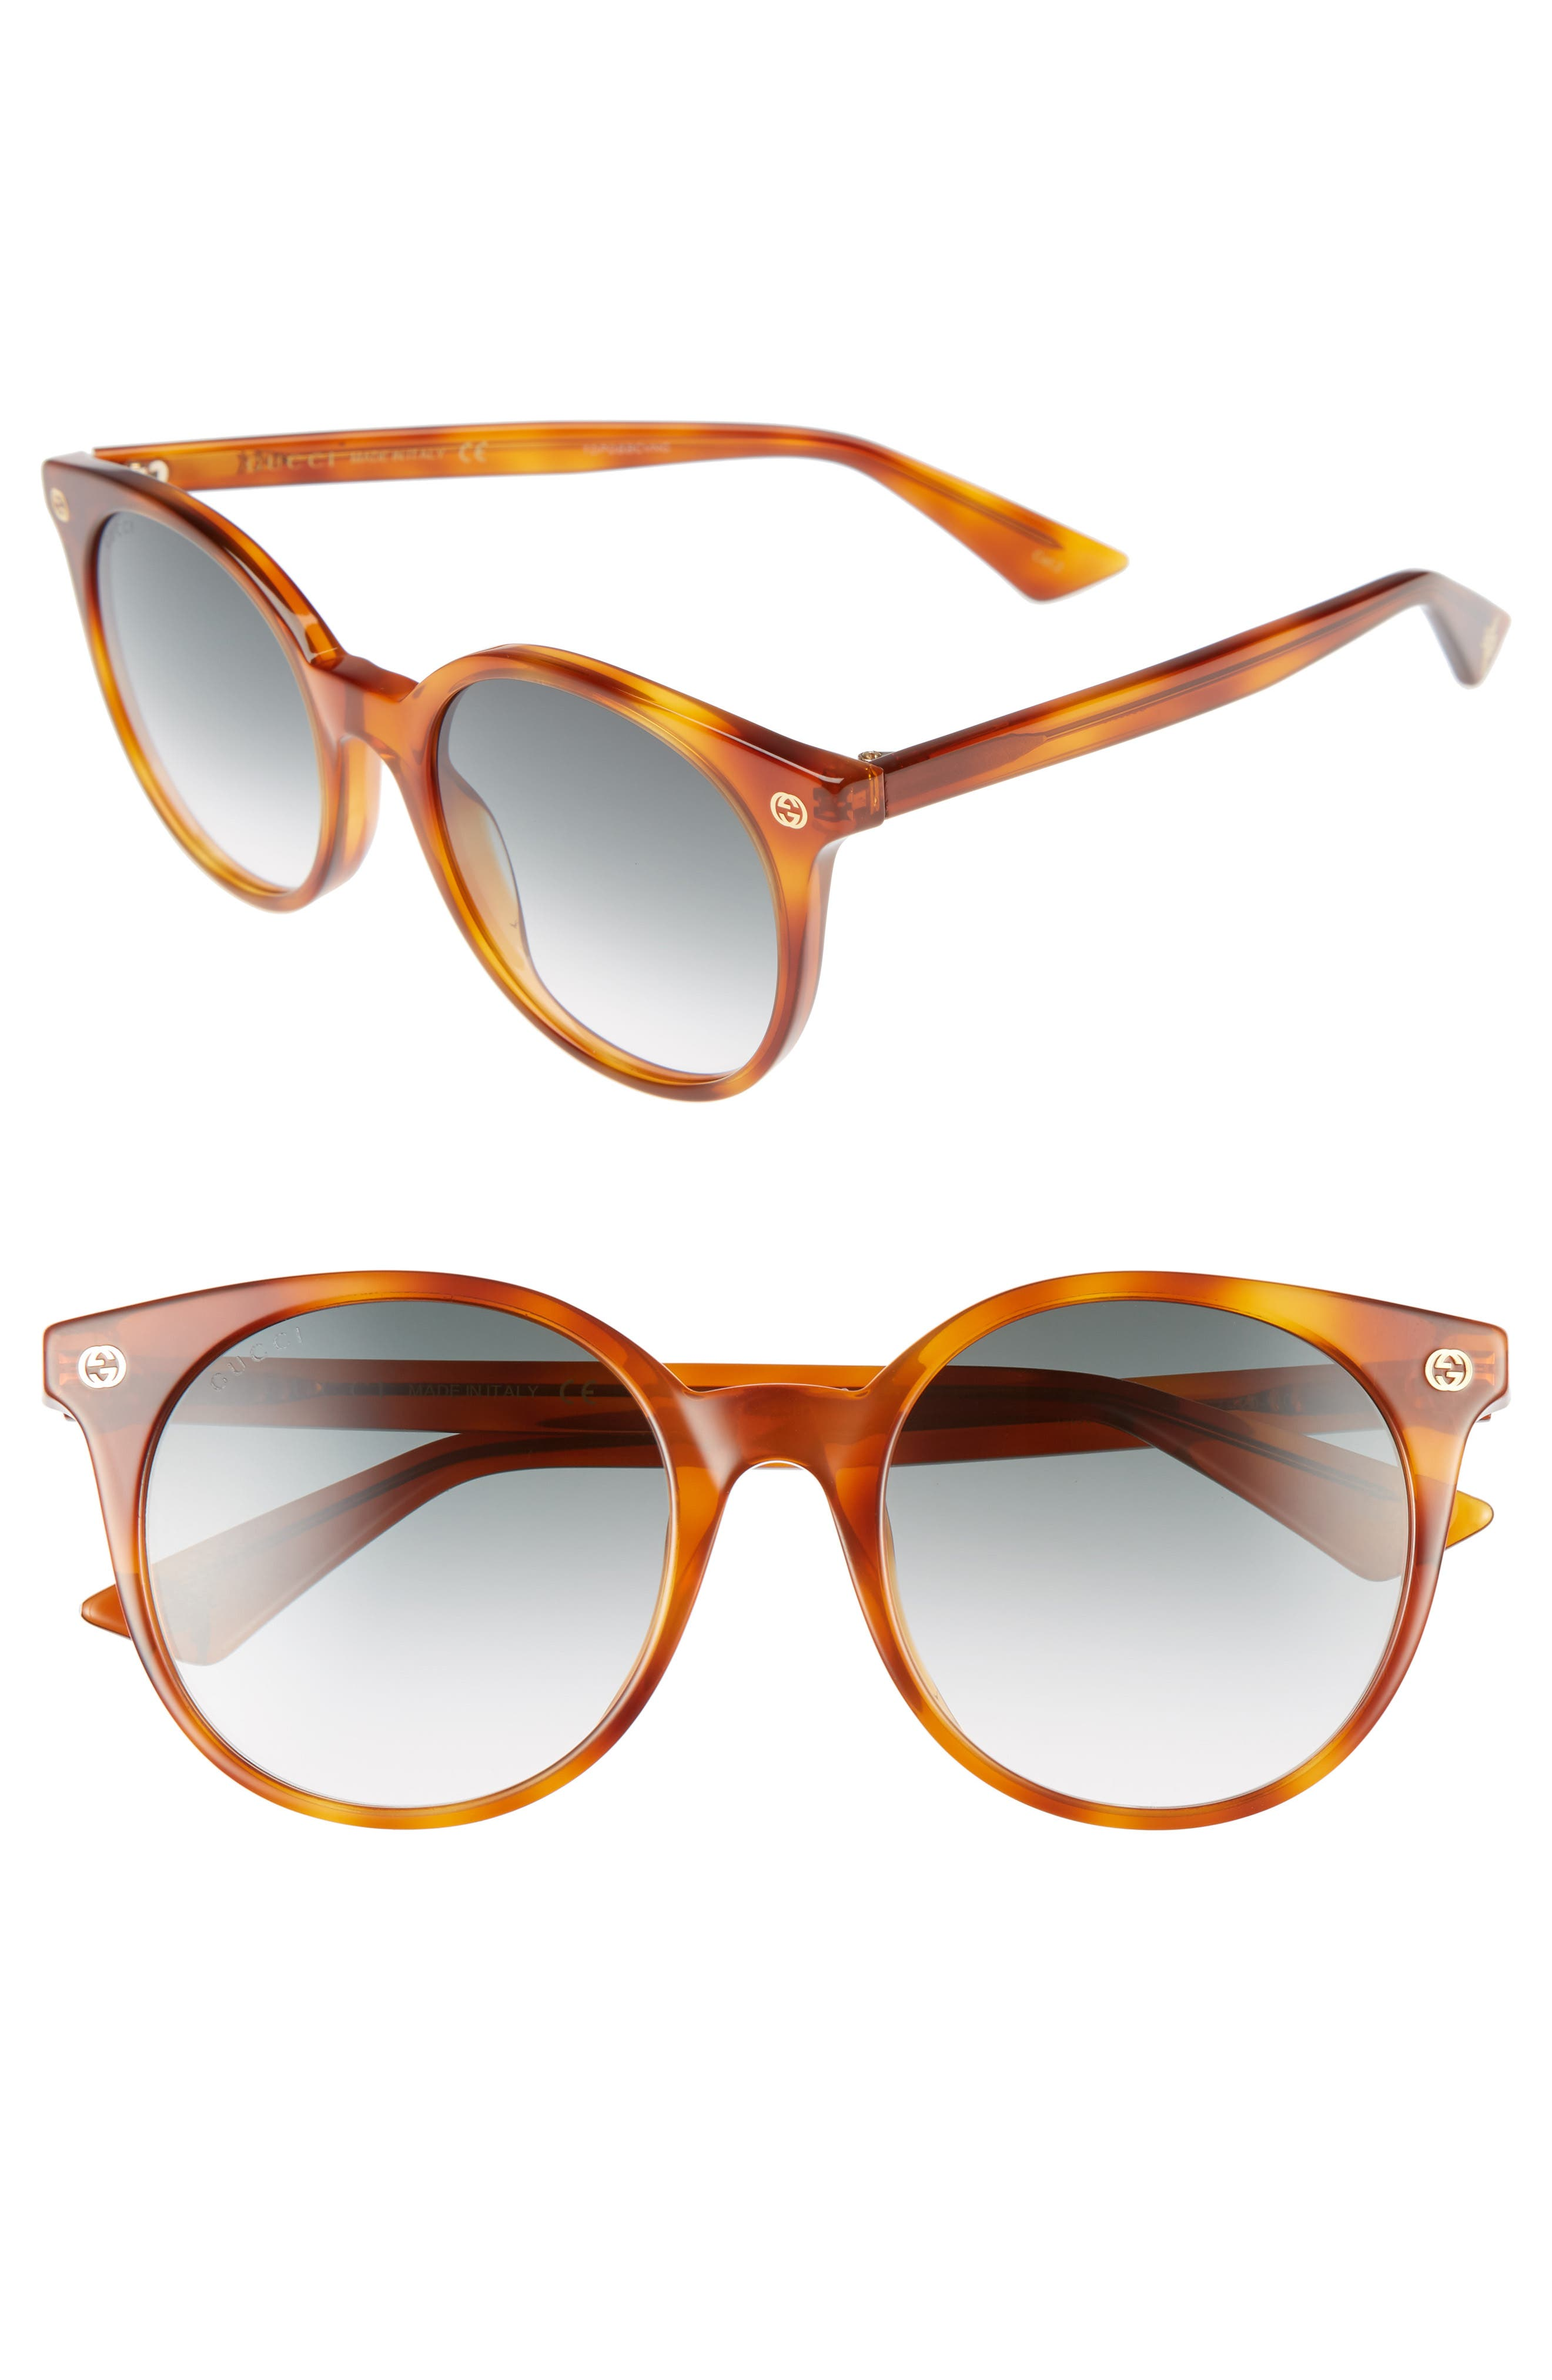 Alternate Image 1 Selected - Gucci 52mm Round Sunglasses